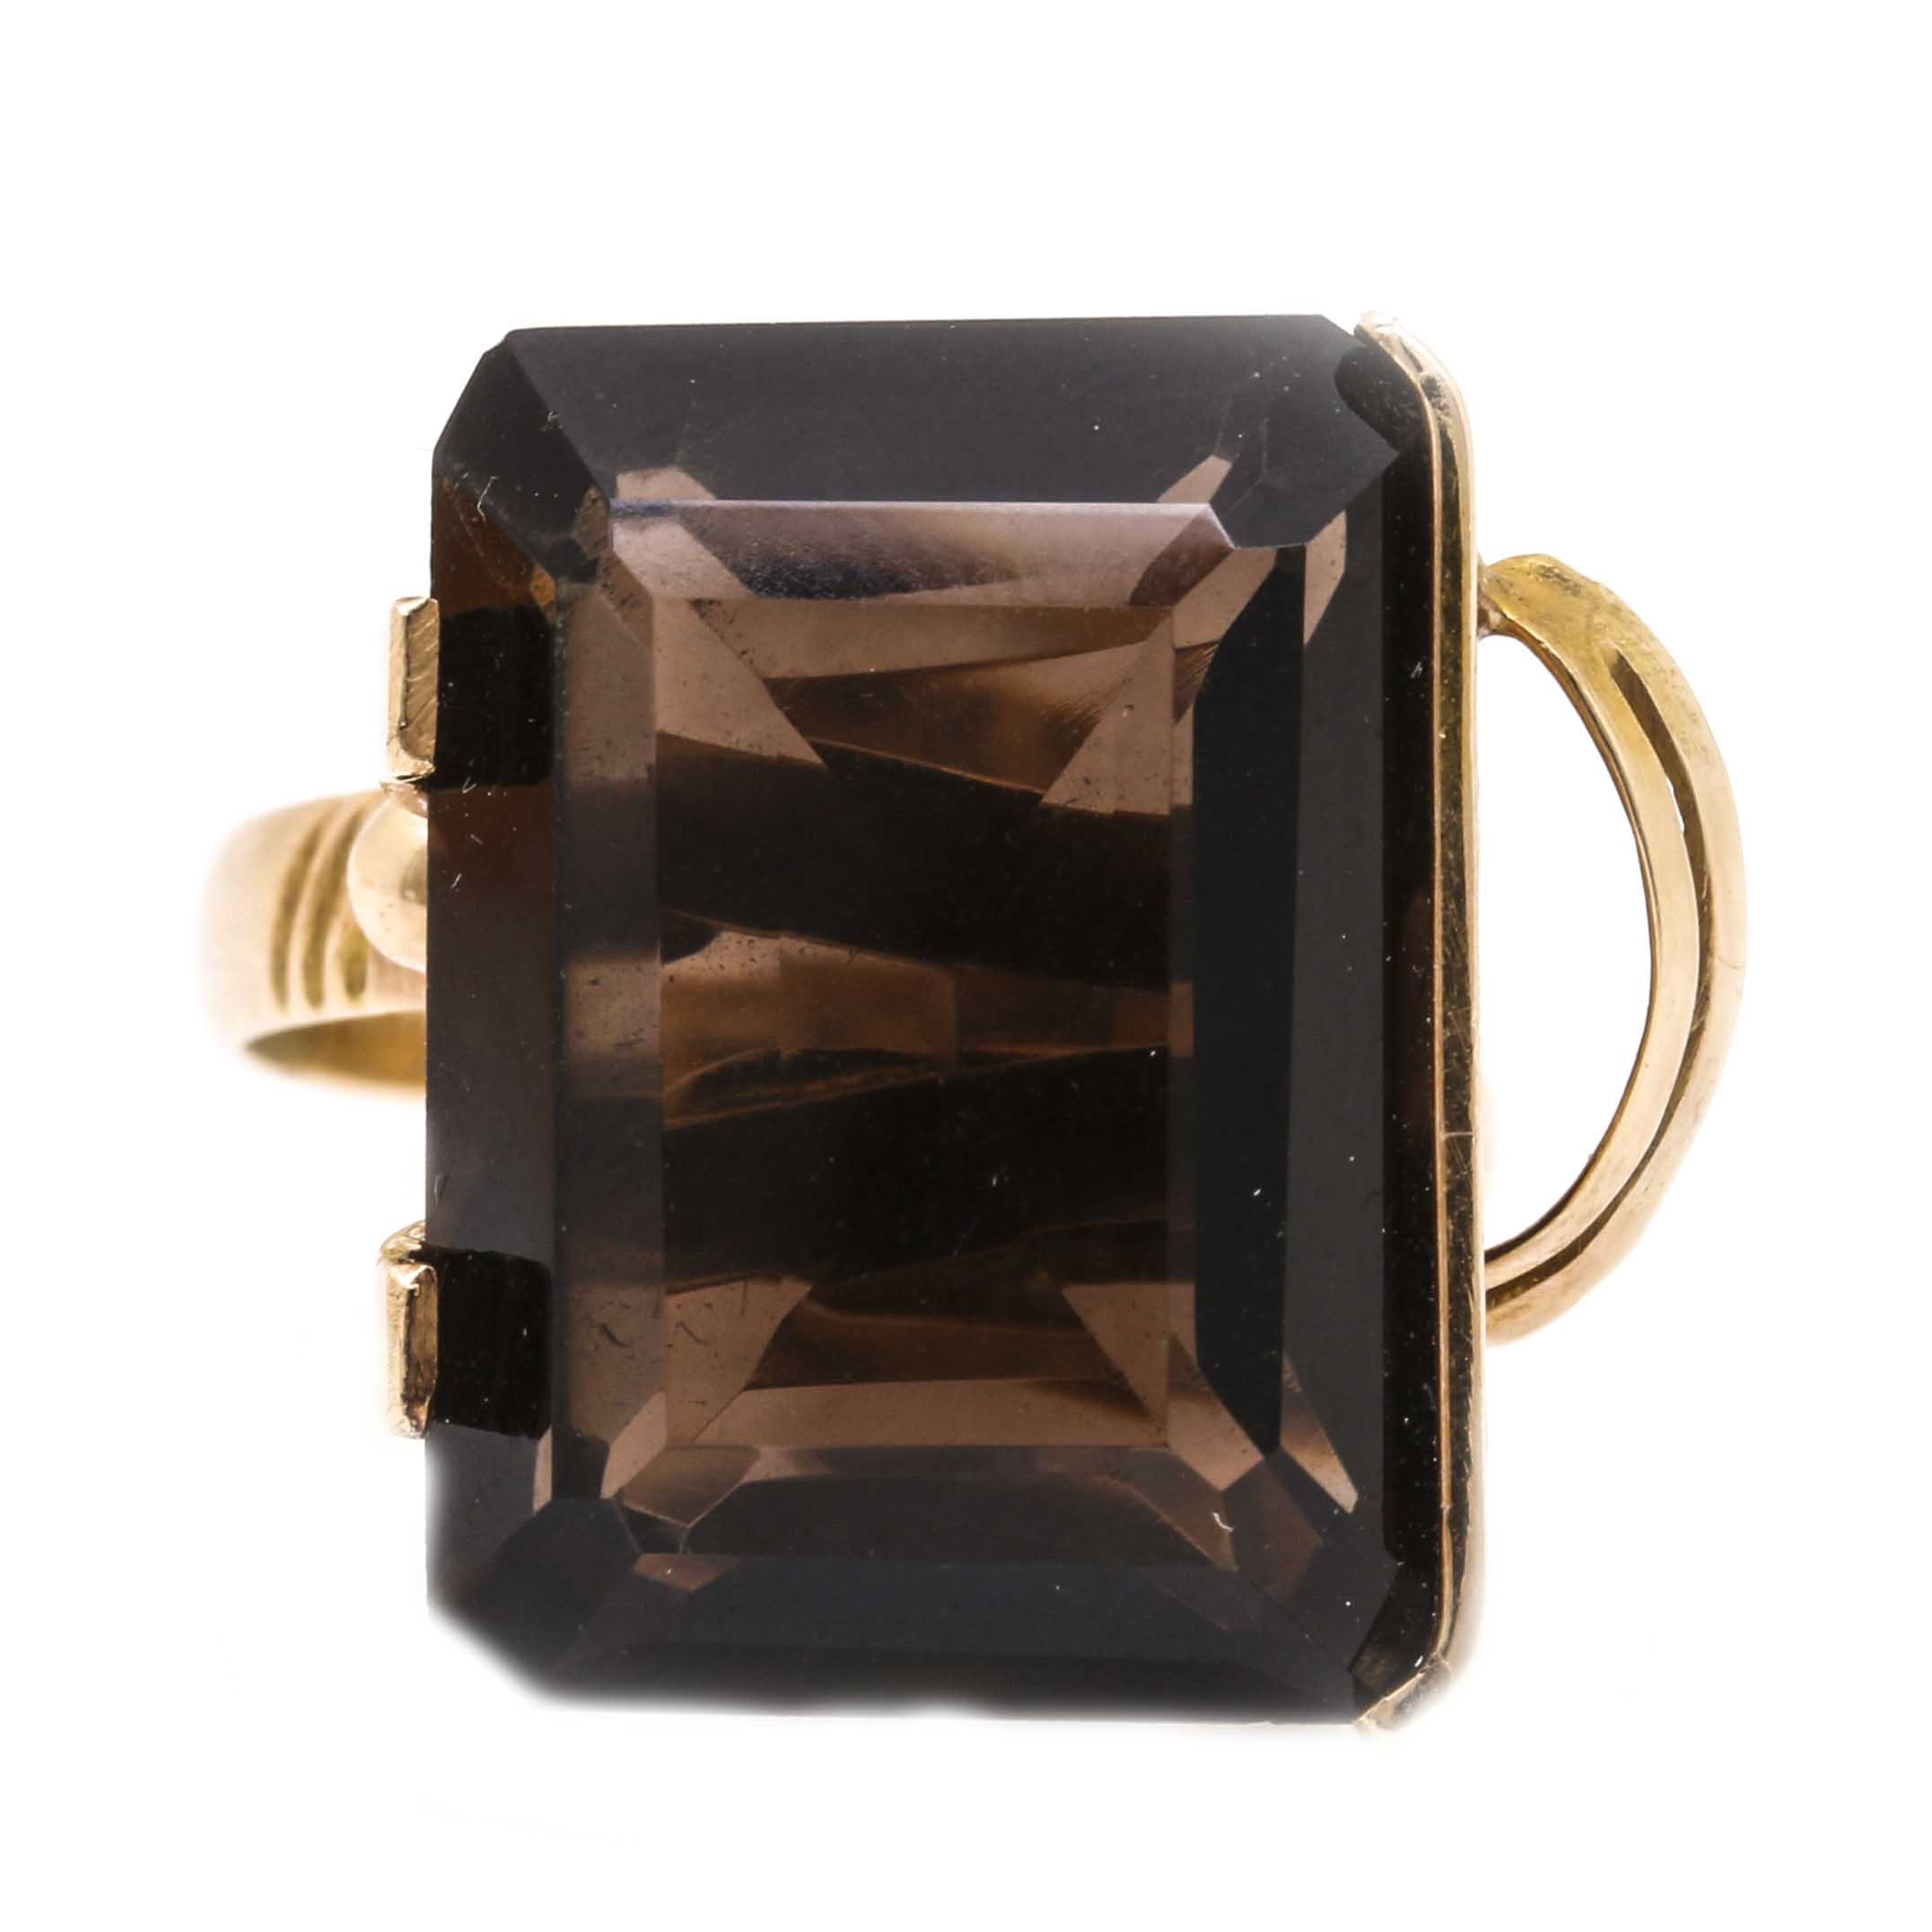 14K Yellow Gold 12.10 CTS Smoky Quartz Cocktail Ring